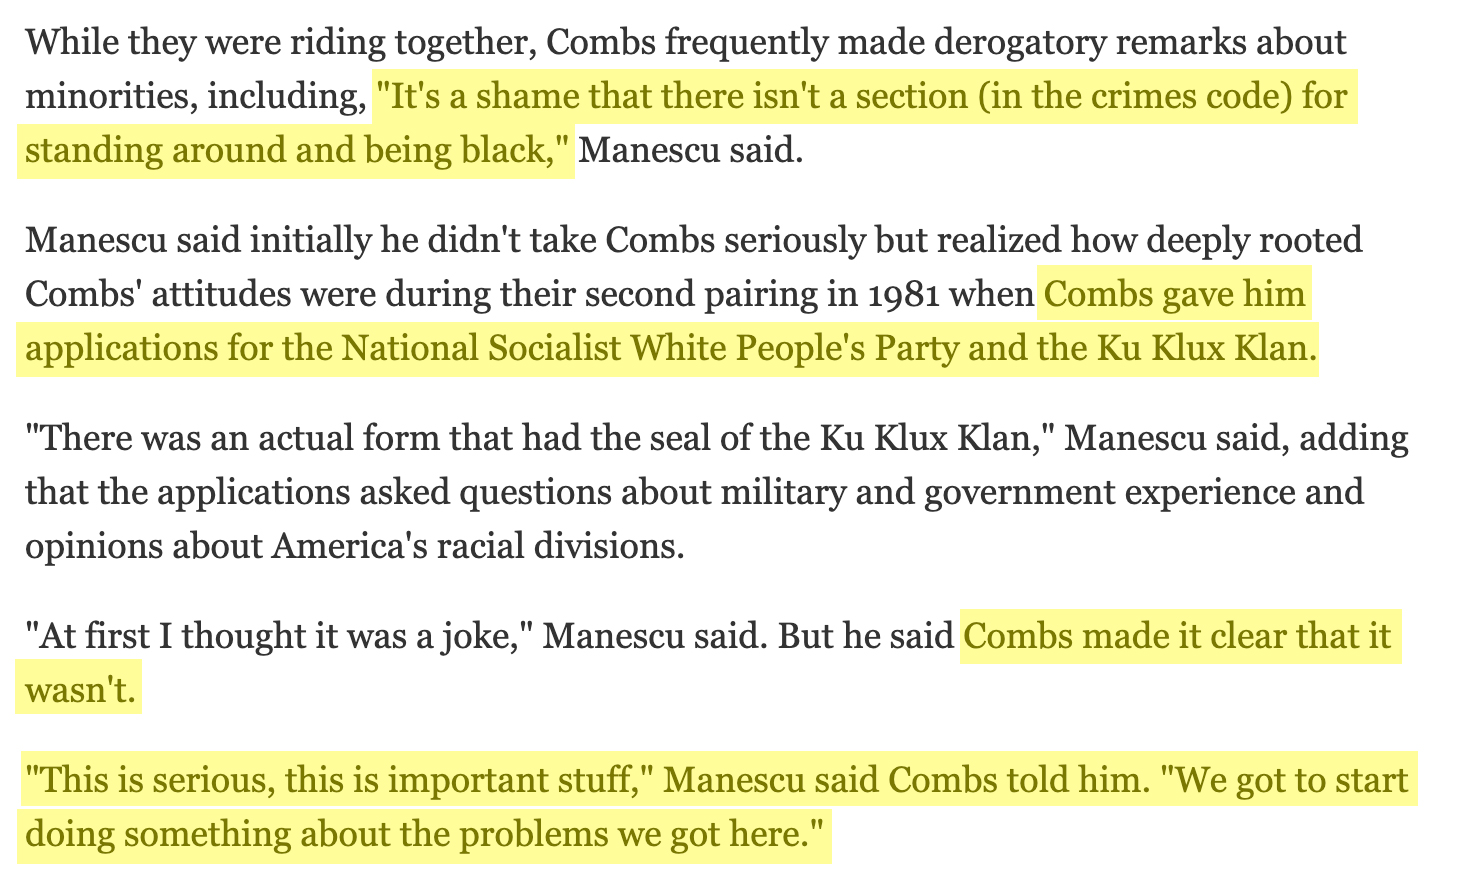 """While they were riding together, Combs frequently made derogatory remarks about minorities, including, """"It's a shame that there isn't a section (in the crimes code) for standing around and being black,"""" Manescu said. Manescu said initially he didn't take Combs seriously but realized how deeply rooted Combs' attitudes were during their second pairing in 1981 when Combs gave him applications for the National Socialist White People's Party and the Ku Klux Klan. """"There was an actual form that had the seal of the Ku Klux Klan,"""" Manescu said, adding that the applications asked questions about military and government experience and opinions about America's racial divisions. """"At first I thought it was a joke,"""" Manescu said. But he said Combs made it clear that it wasn't. """"This is serious, this is important stuff,"""" Manescu said Combs told him. """"We got to start doing something about the problems we got here."""""""